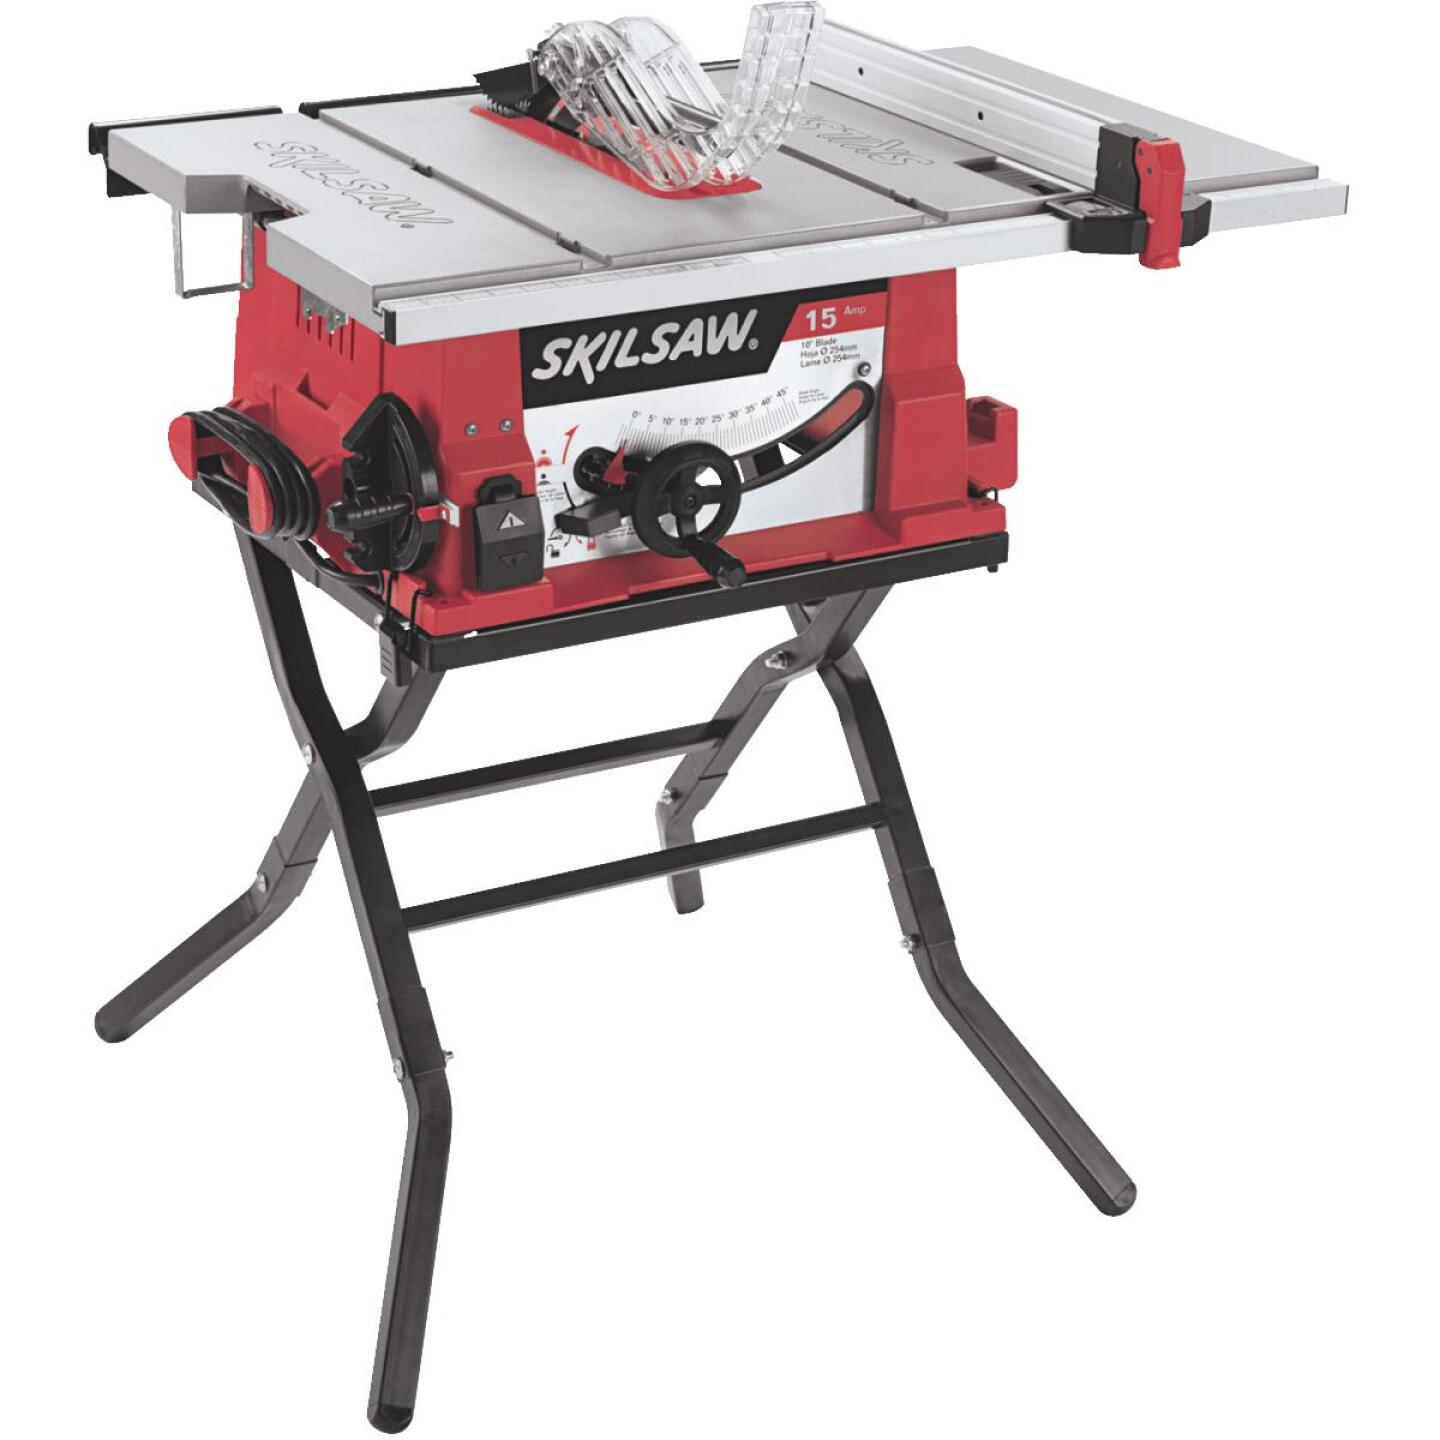 SKILSAW 15-Amp 10 In. Table Saw with Folding Stand Image 1